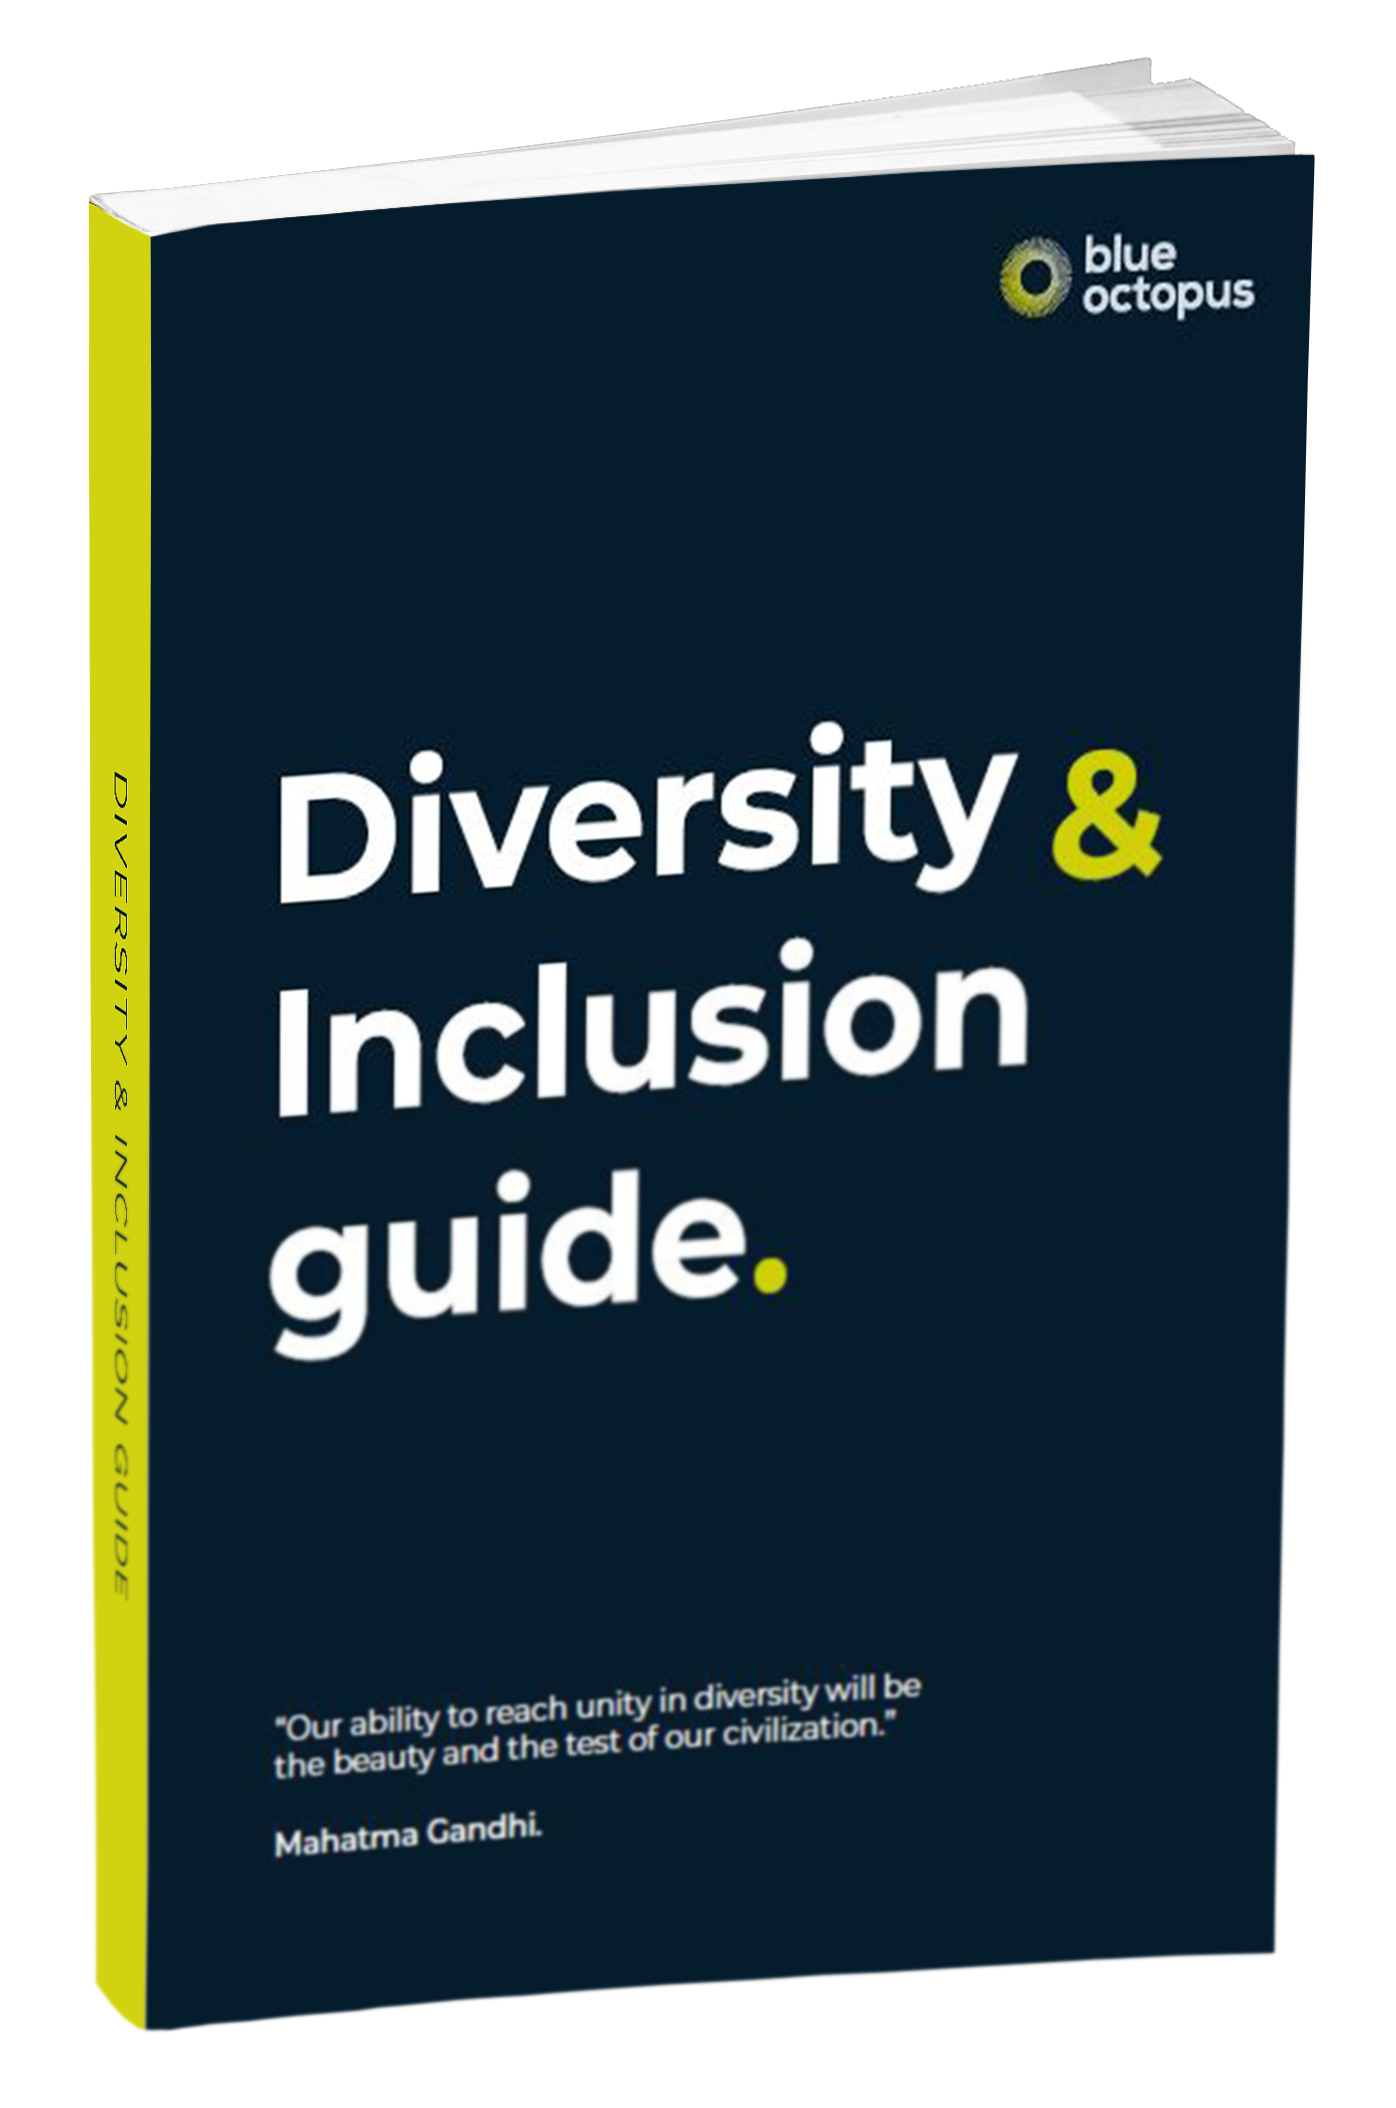 diversity-and-inclusion-guide mock up